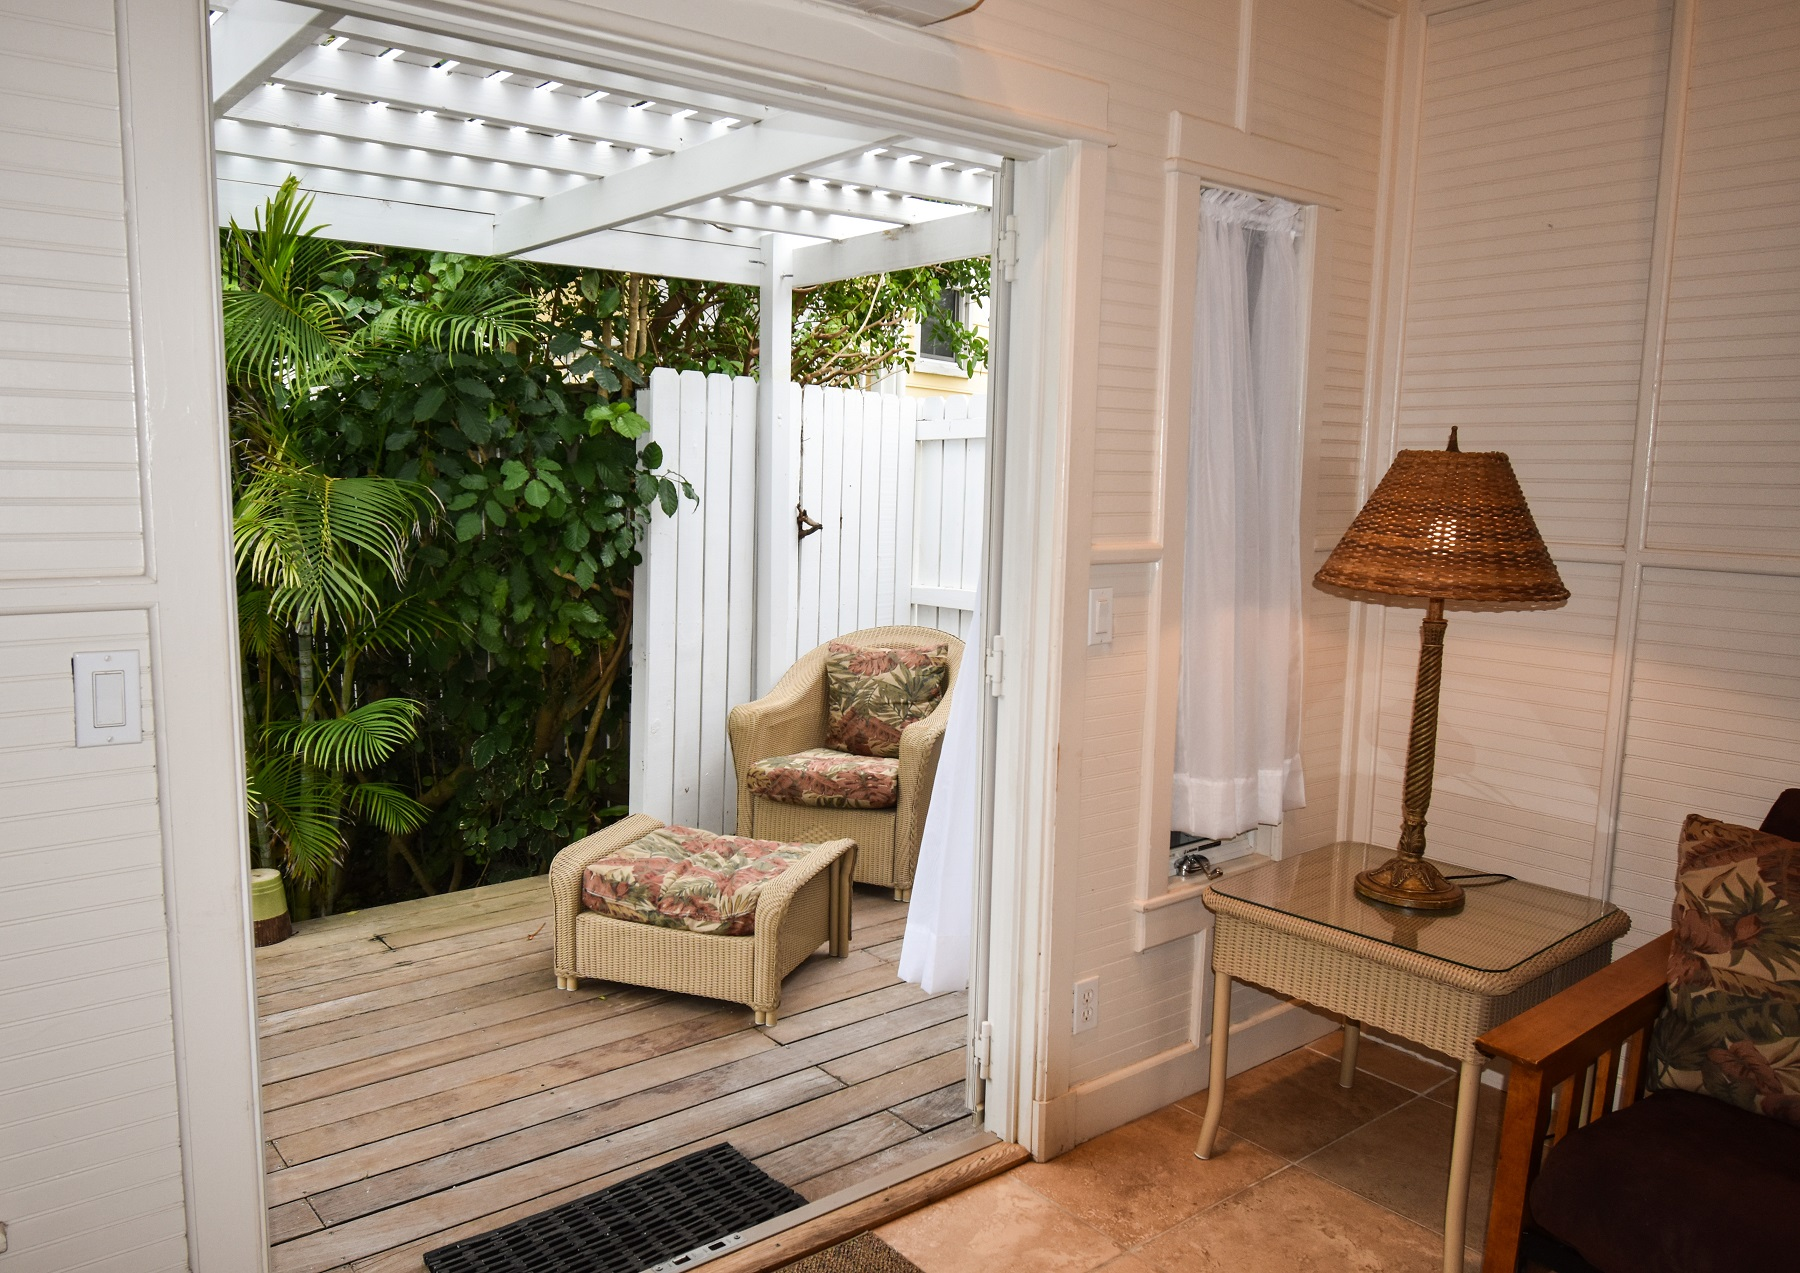 Additional photo for property listing at Clifford Sawyer House, Hope Town, Elbow Cay, Abaco, Bahamas Elbow Cay Hope Town, Abaco, Bahamas